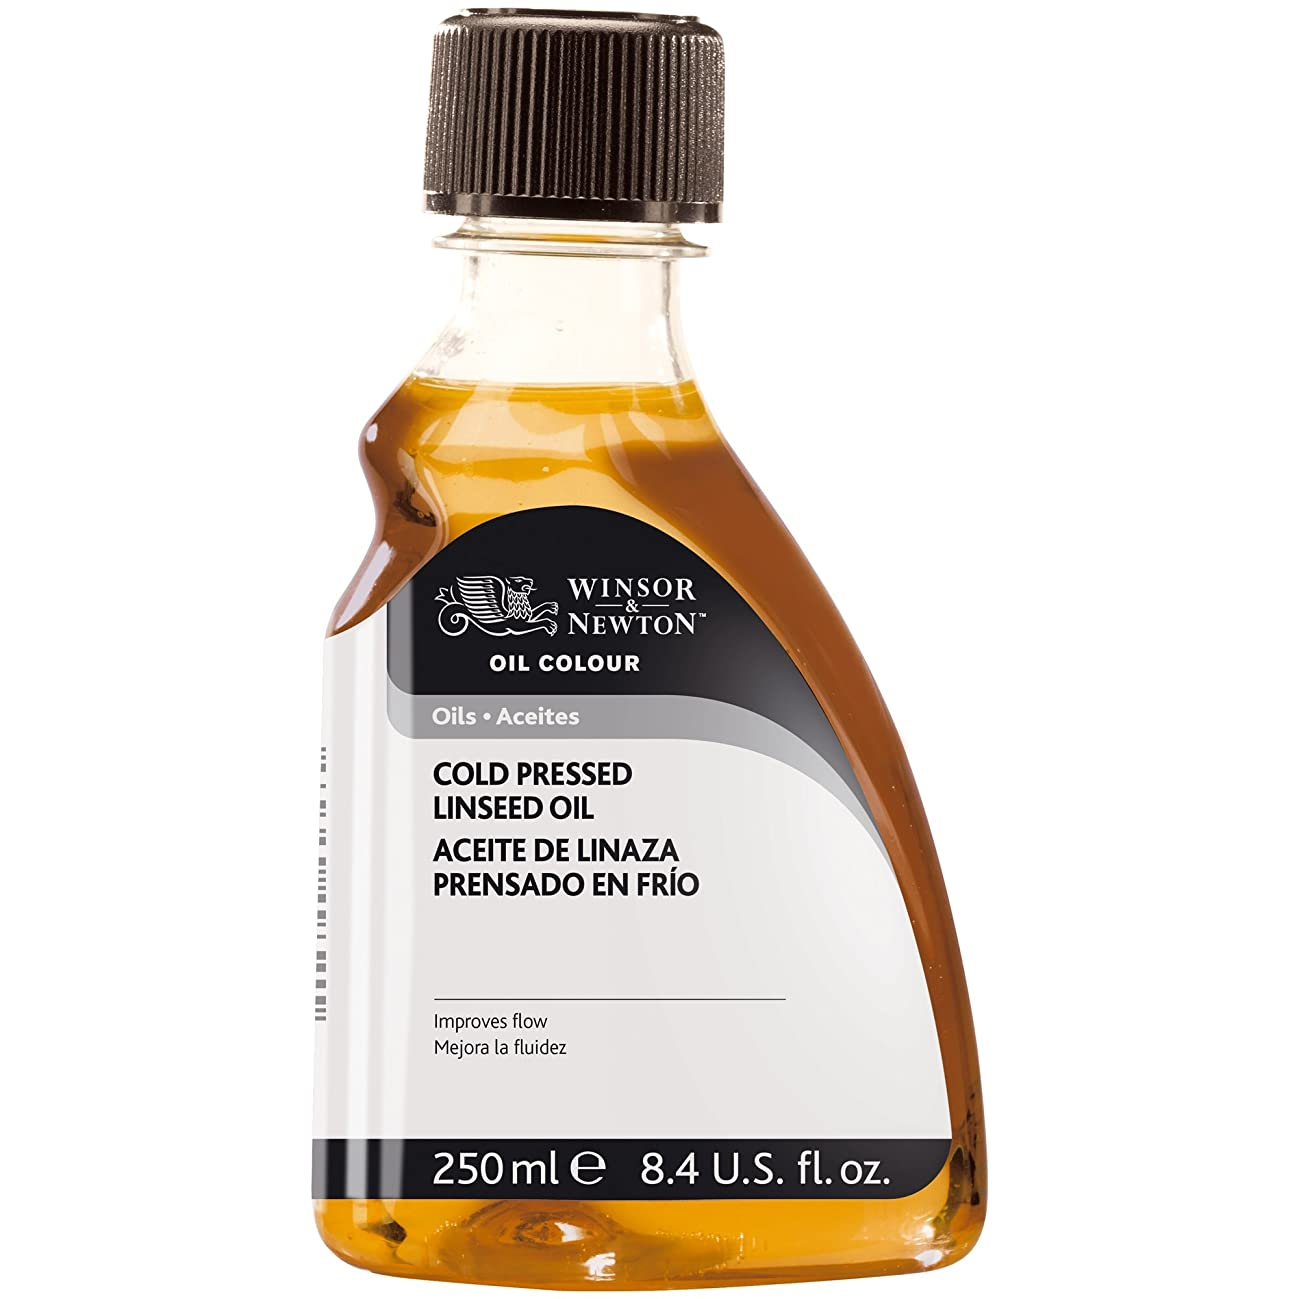 Winsor & Newton Cold Pressed Linseed Oil, 250ml